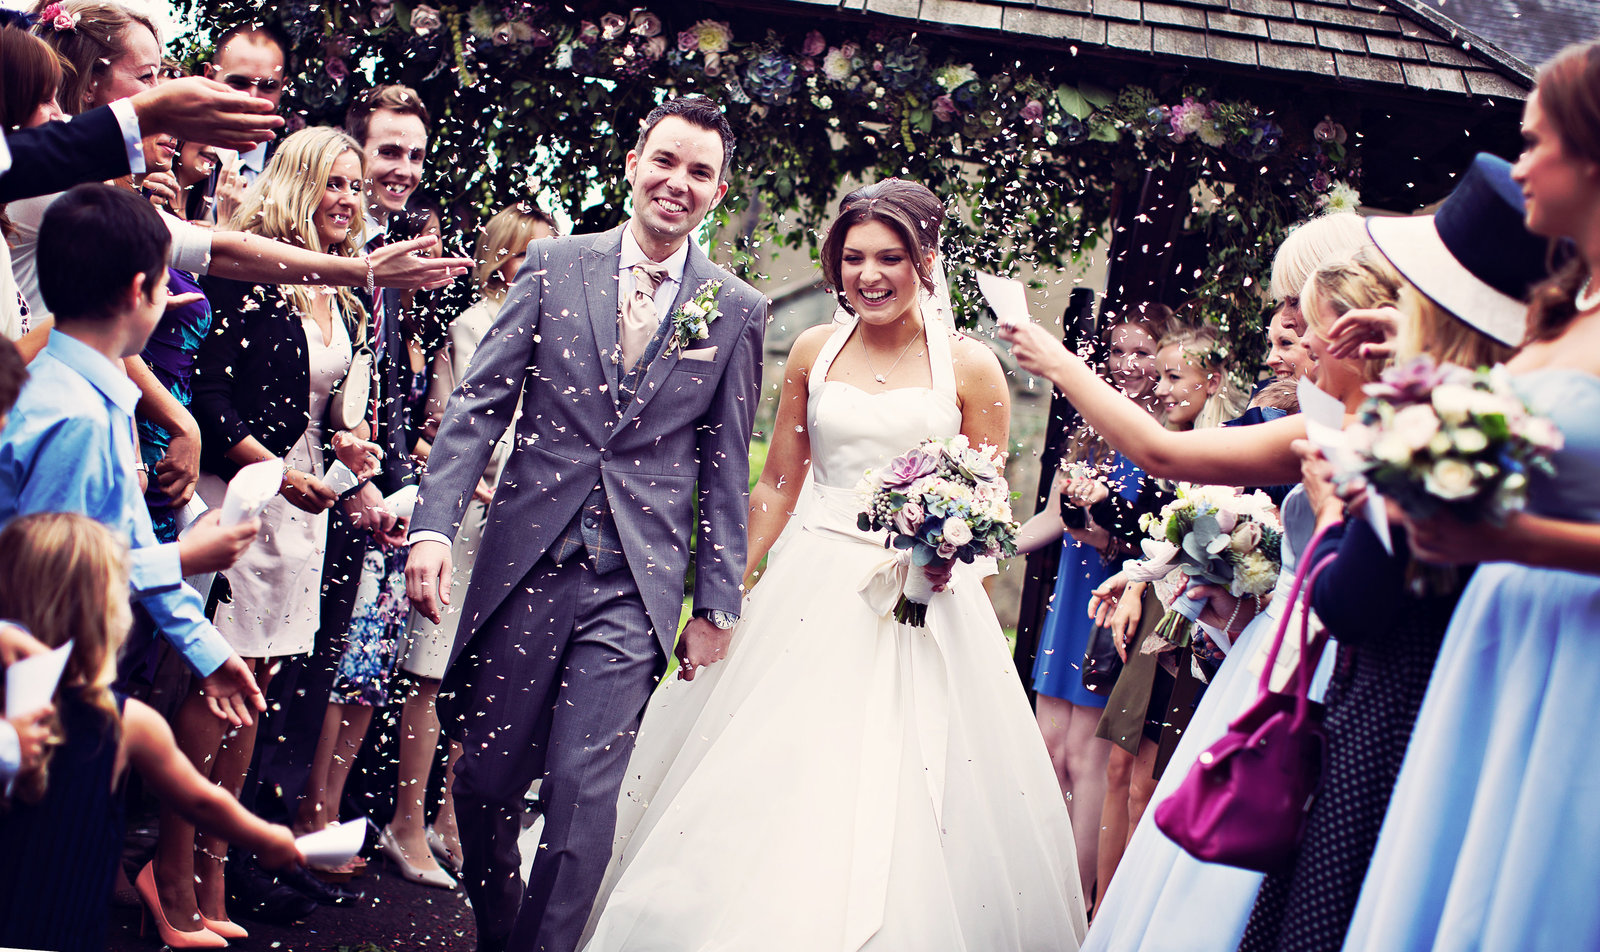 Bride and groom celebrate leaving St.Marys Church at The Inn at Whitewell in Lancashire